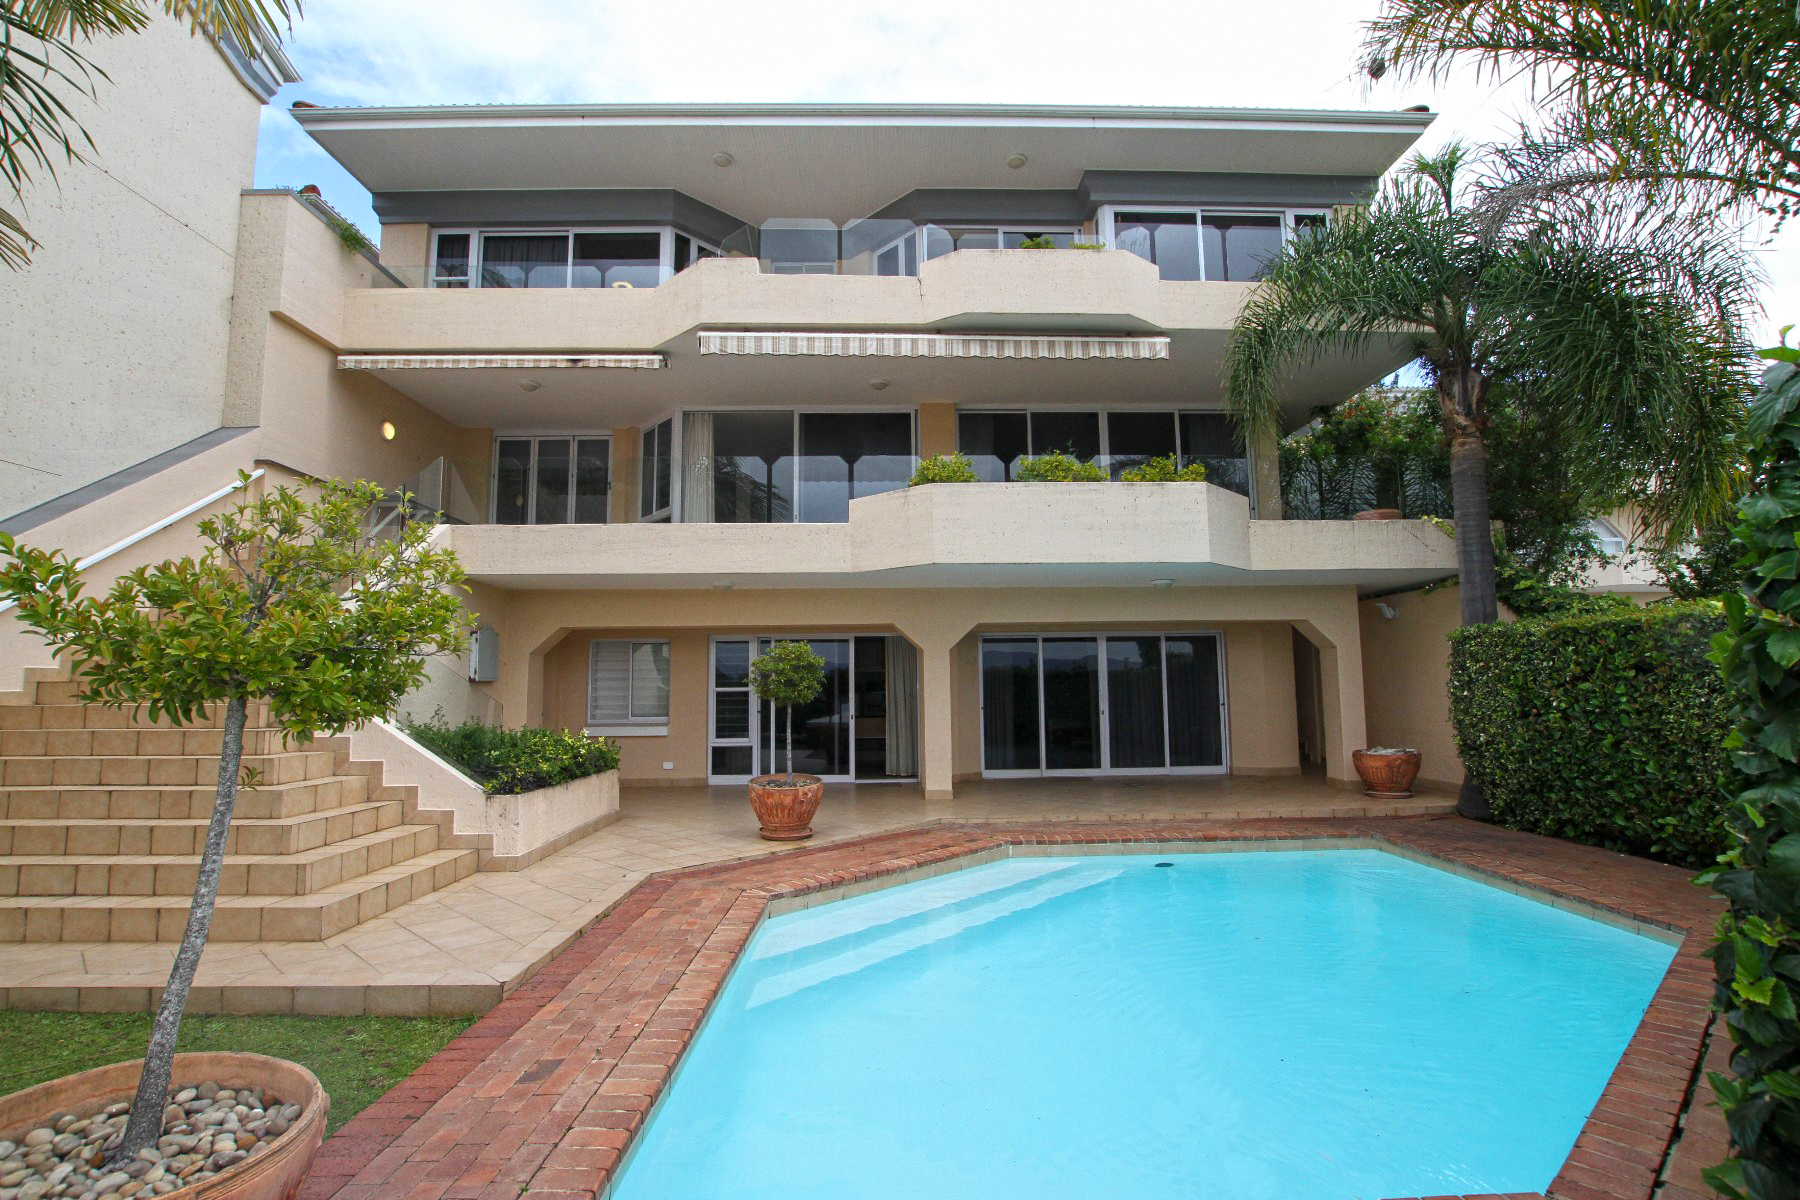 Single Family Home for Sale at Elegant Home with Sea Views Plettenberg Bay, Western Cape, 6600 South Africa